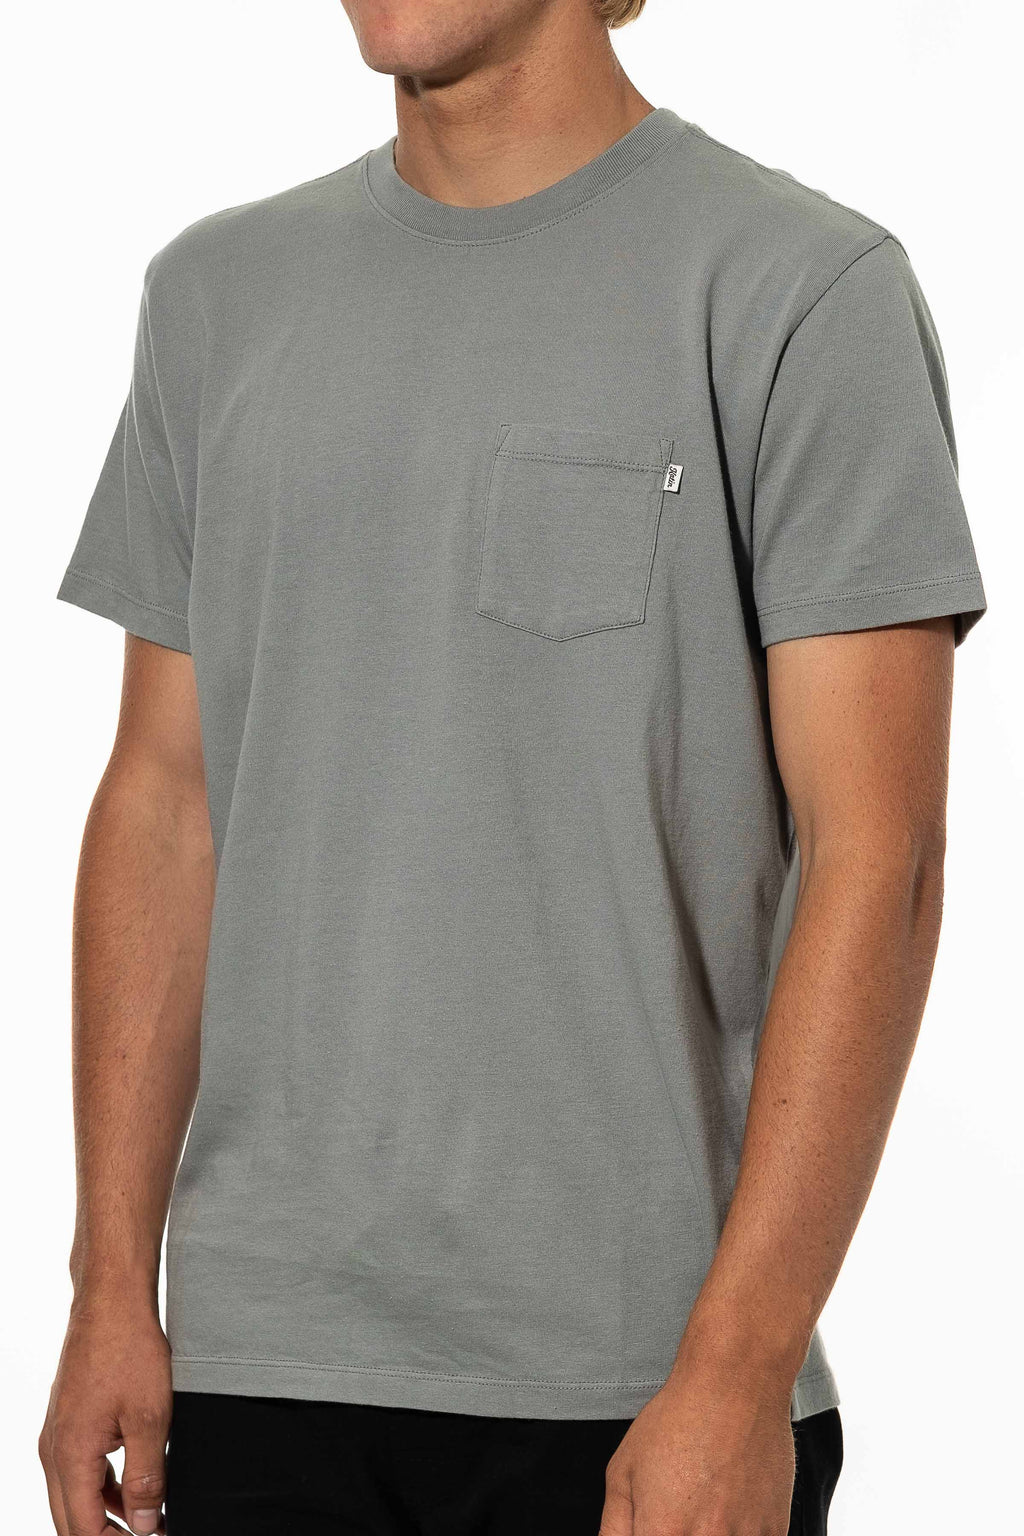 Base Tee (Gray Green)